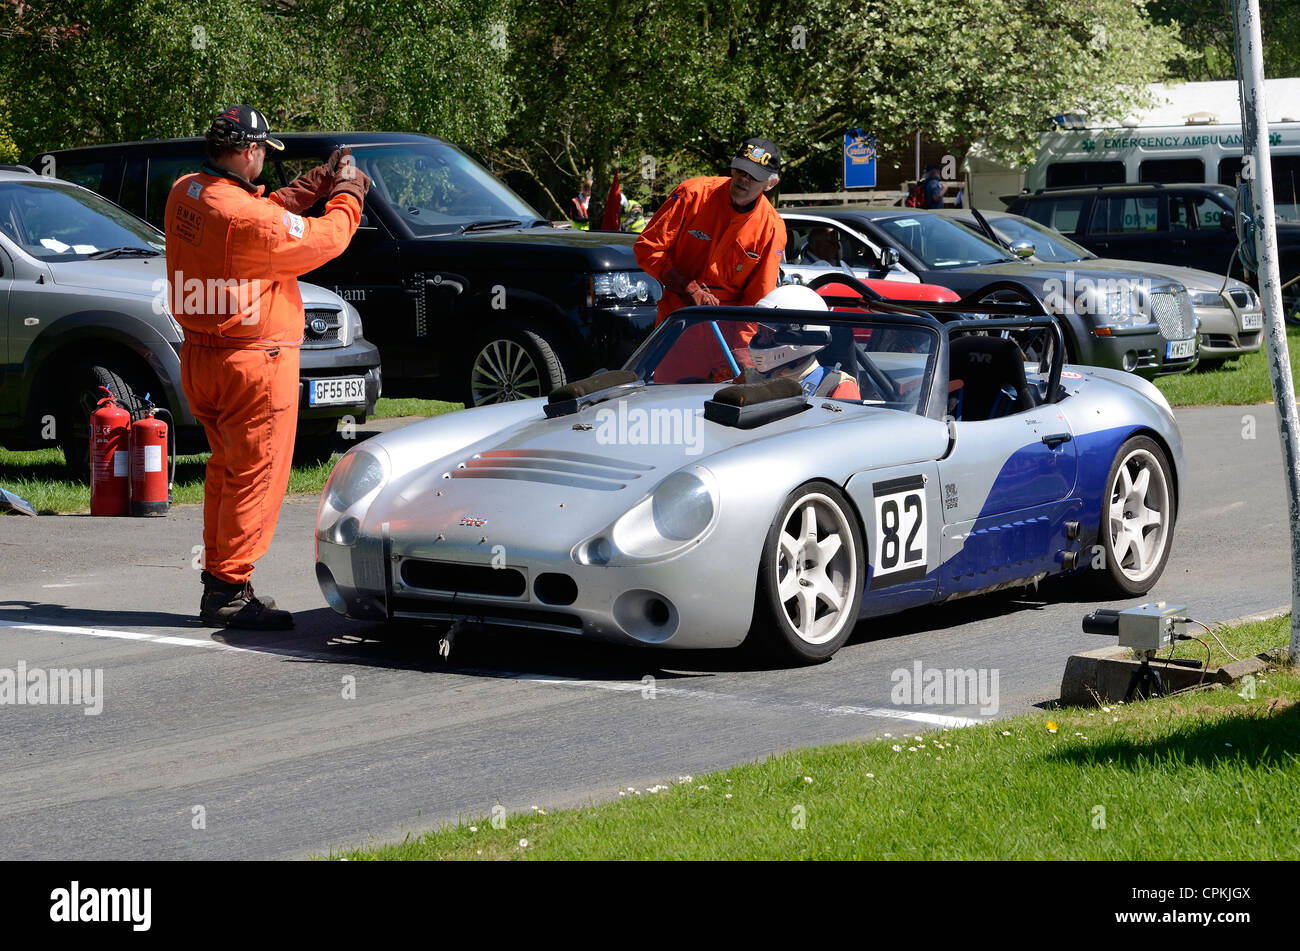 Tvr Sports Car Stock Photos Images Alamy Remote Starter On Start Line At Prescott Hill Climb In Gloucestershire England Uk